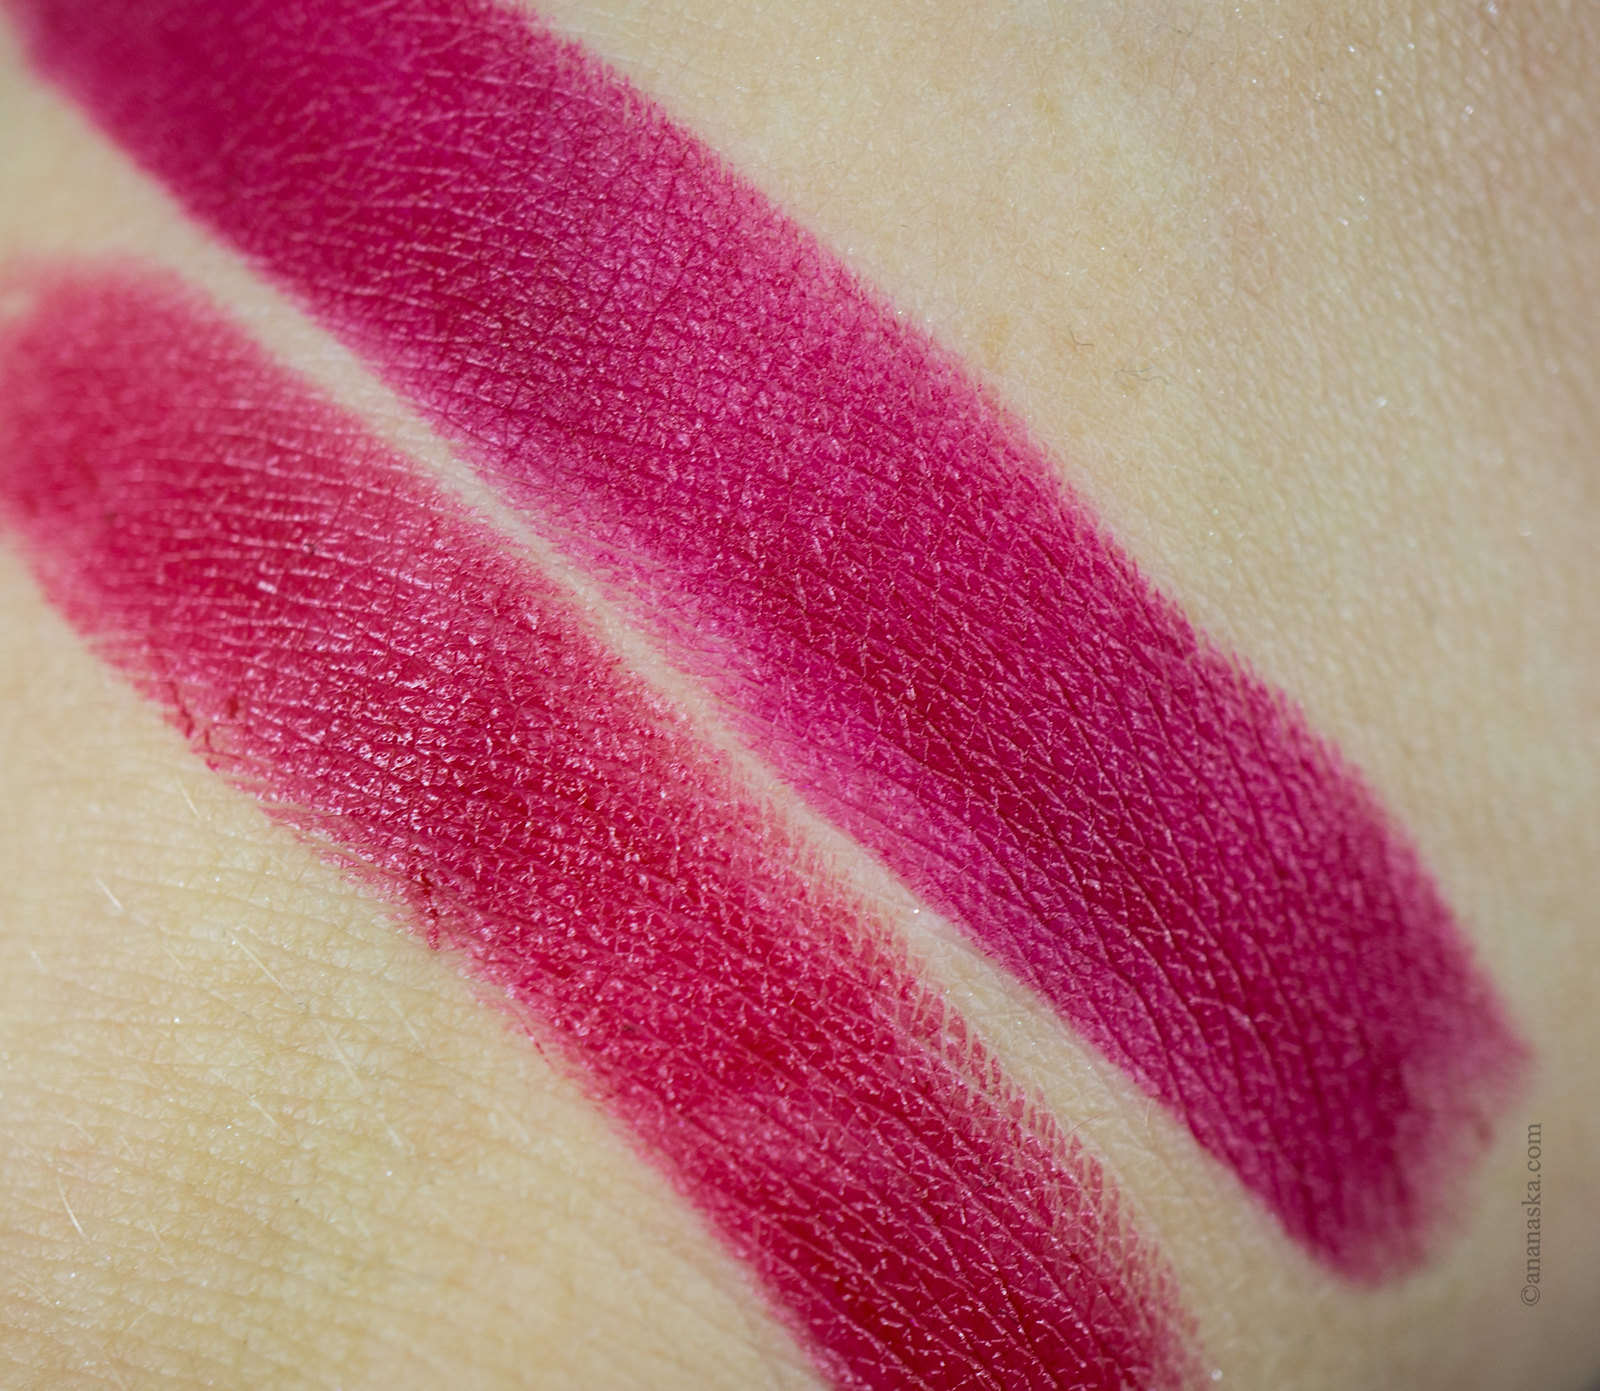 Chanel Rouge Allure 657 №1, Chanel Rouge Allure Velvet 217 №3